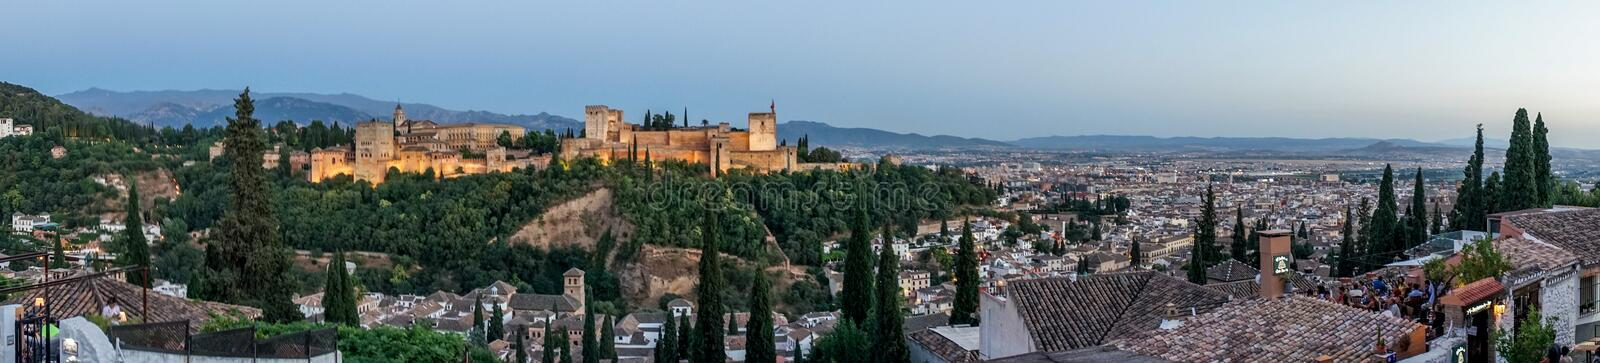 Panorama of the magnificient Alhambra of Granada, Spain. Alhambra fortress at sunset viewed from Mirador de San Nicolas royalty free stock photos